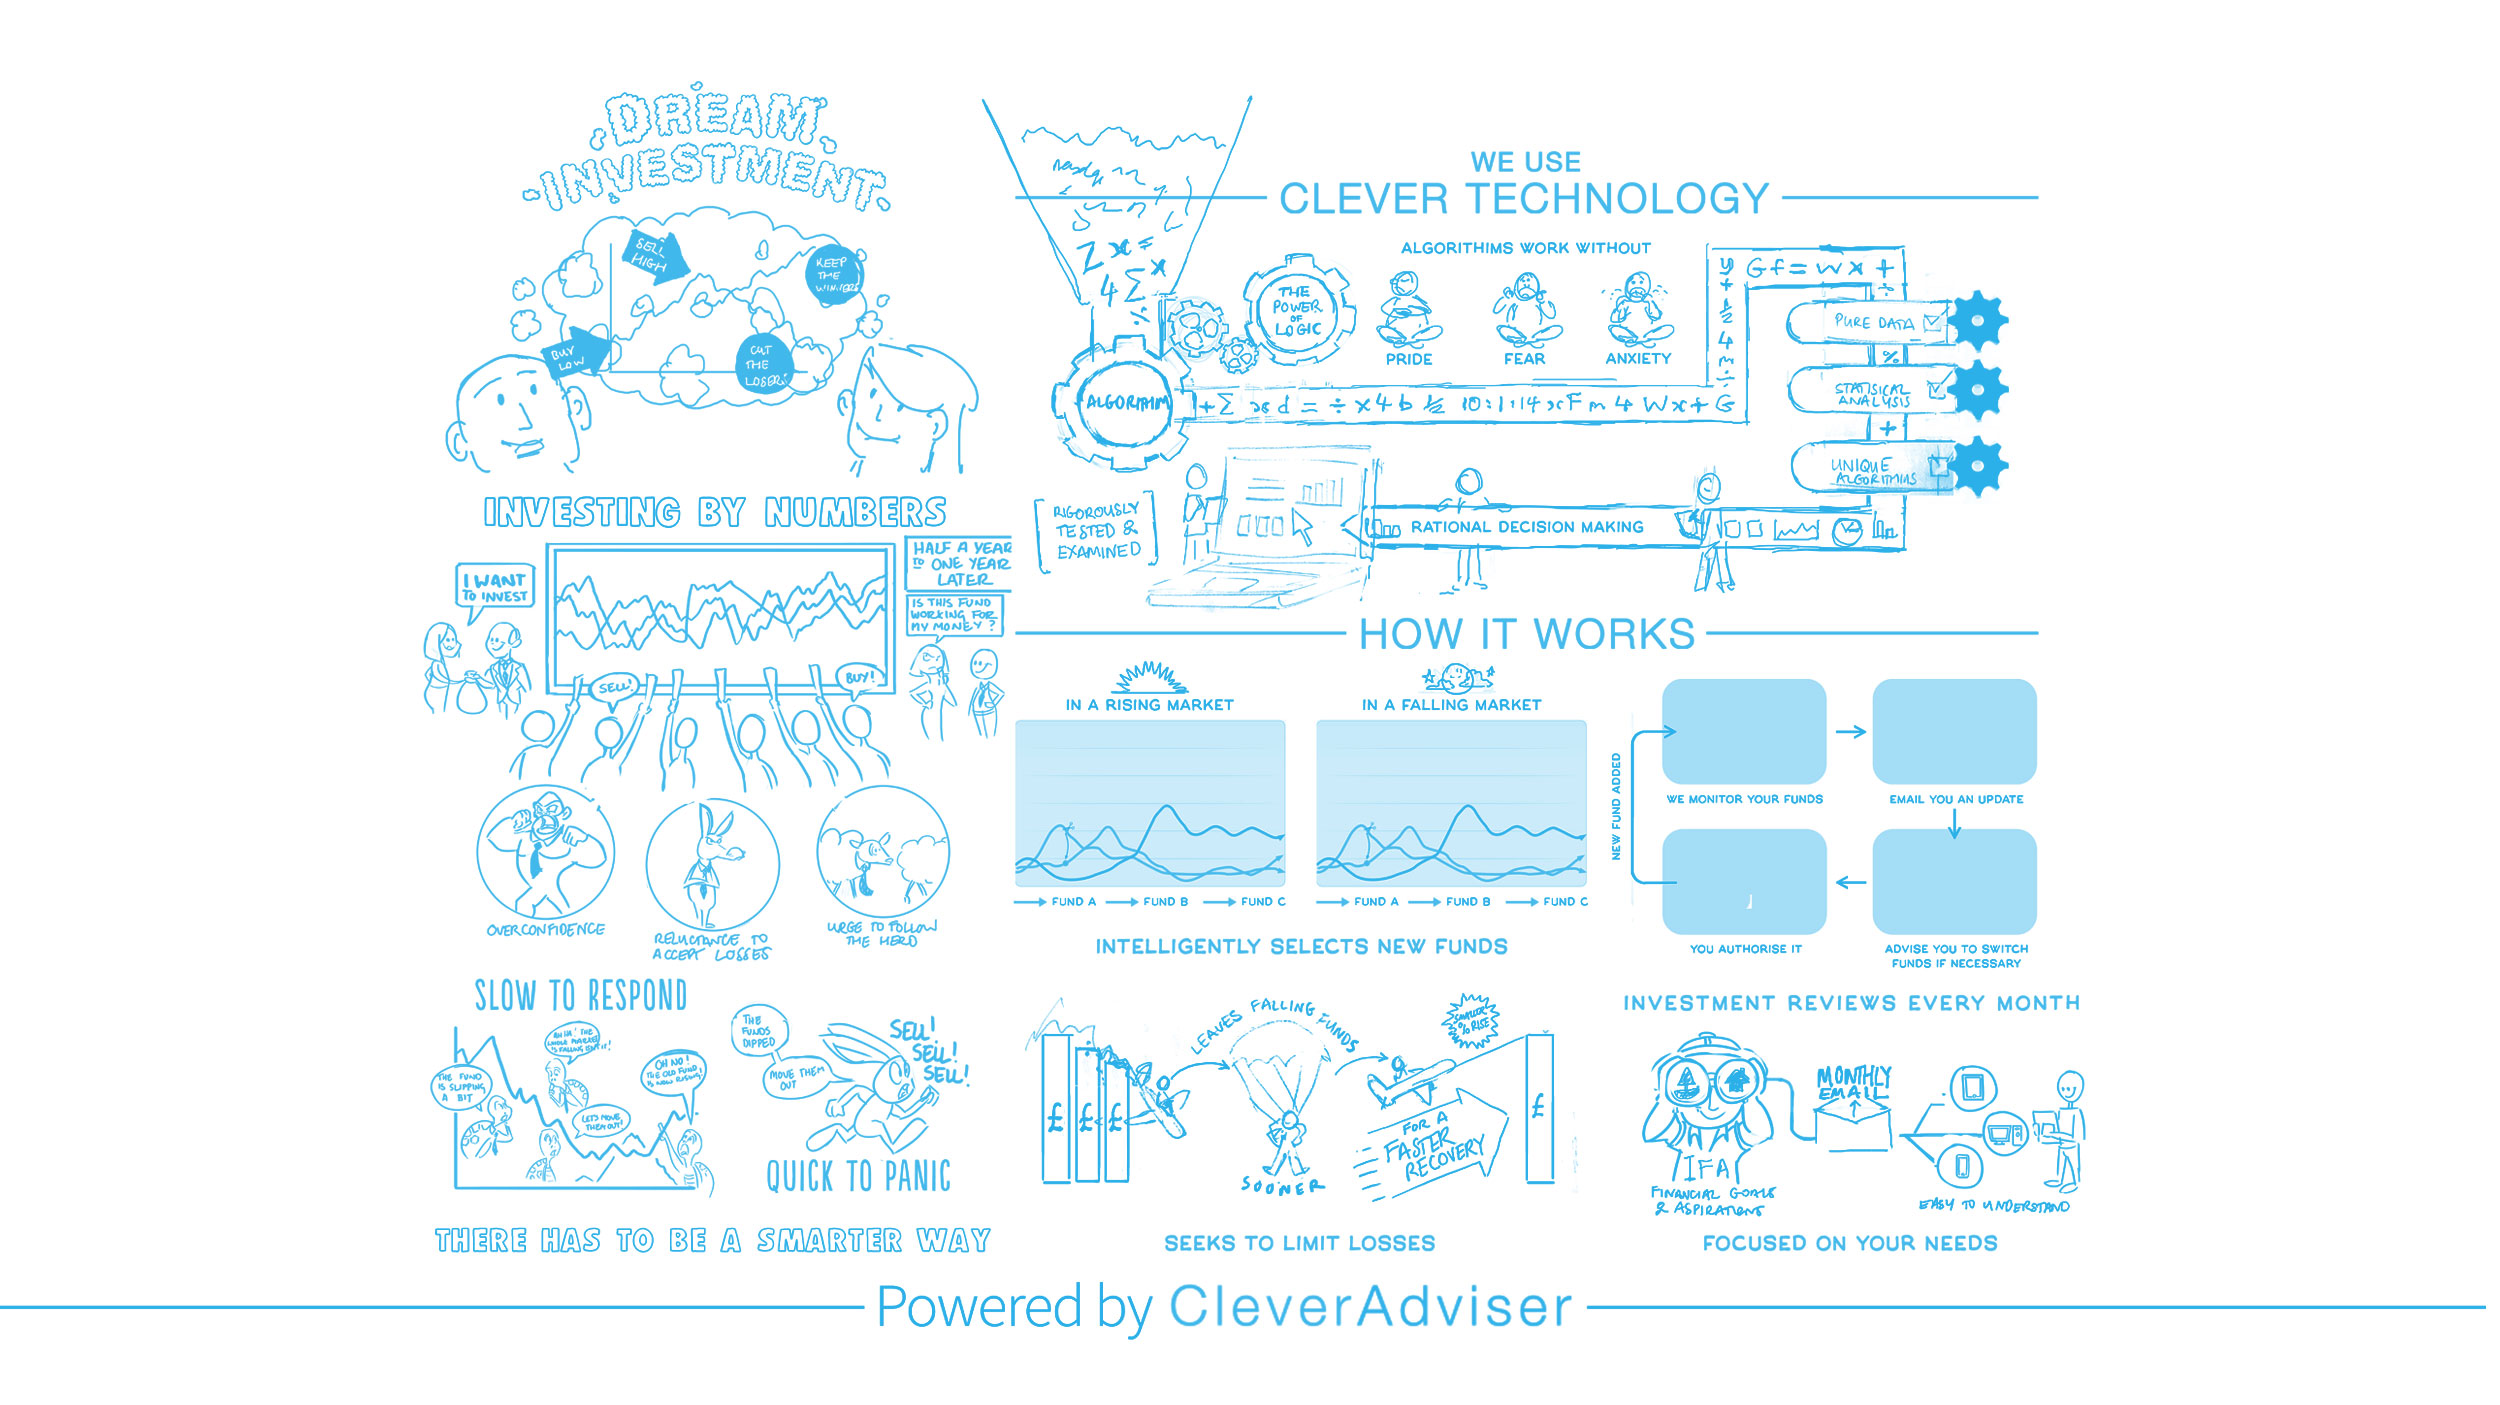 clever-advisor-how-it-works-cognitive-02.jpg